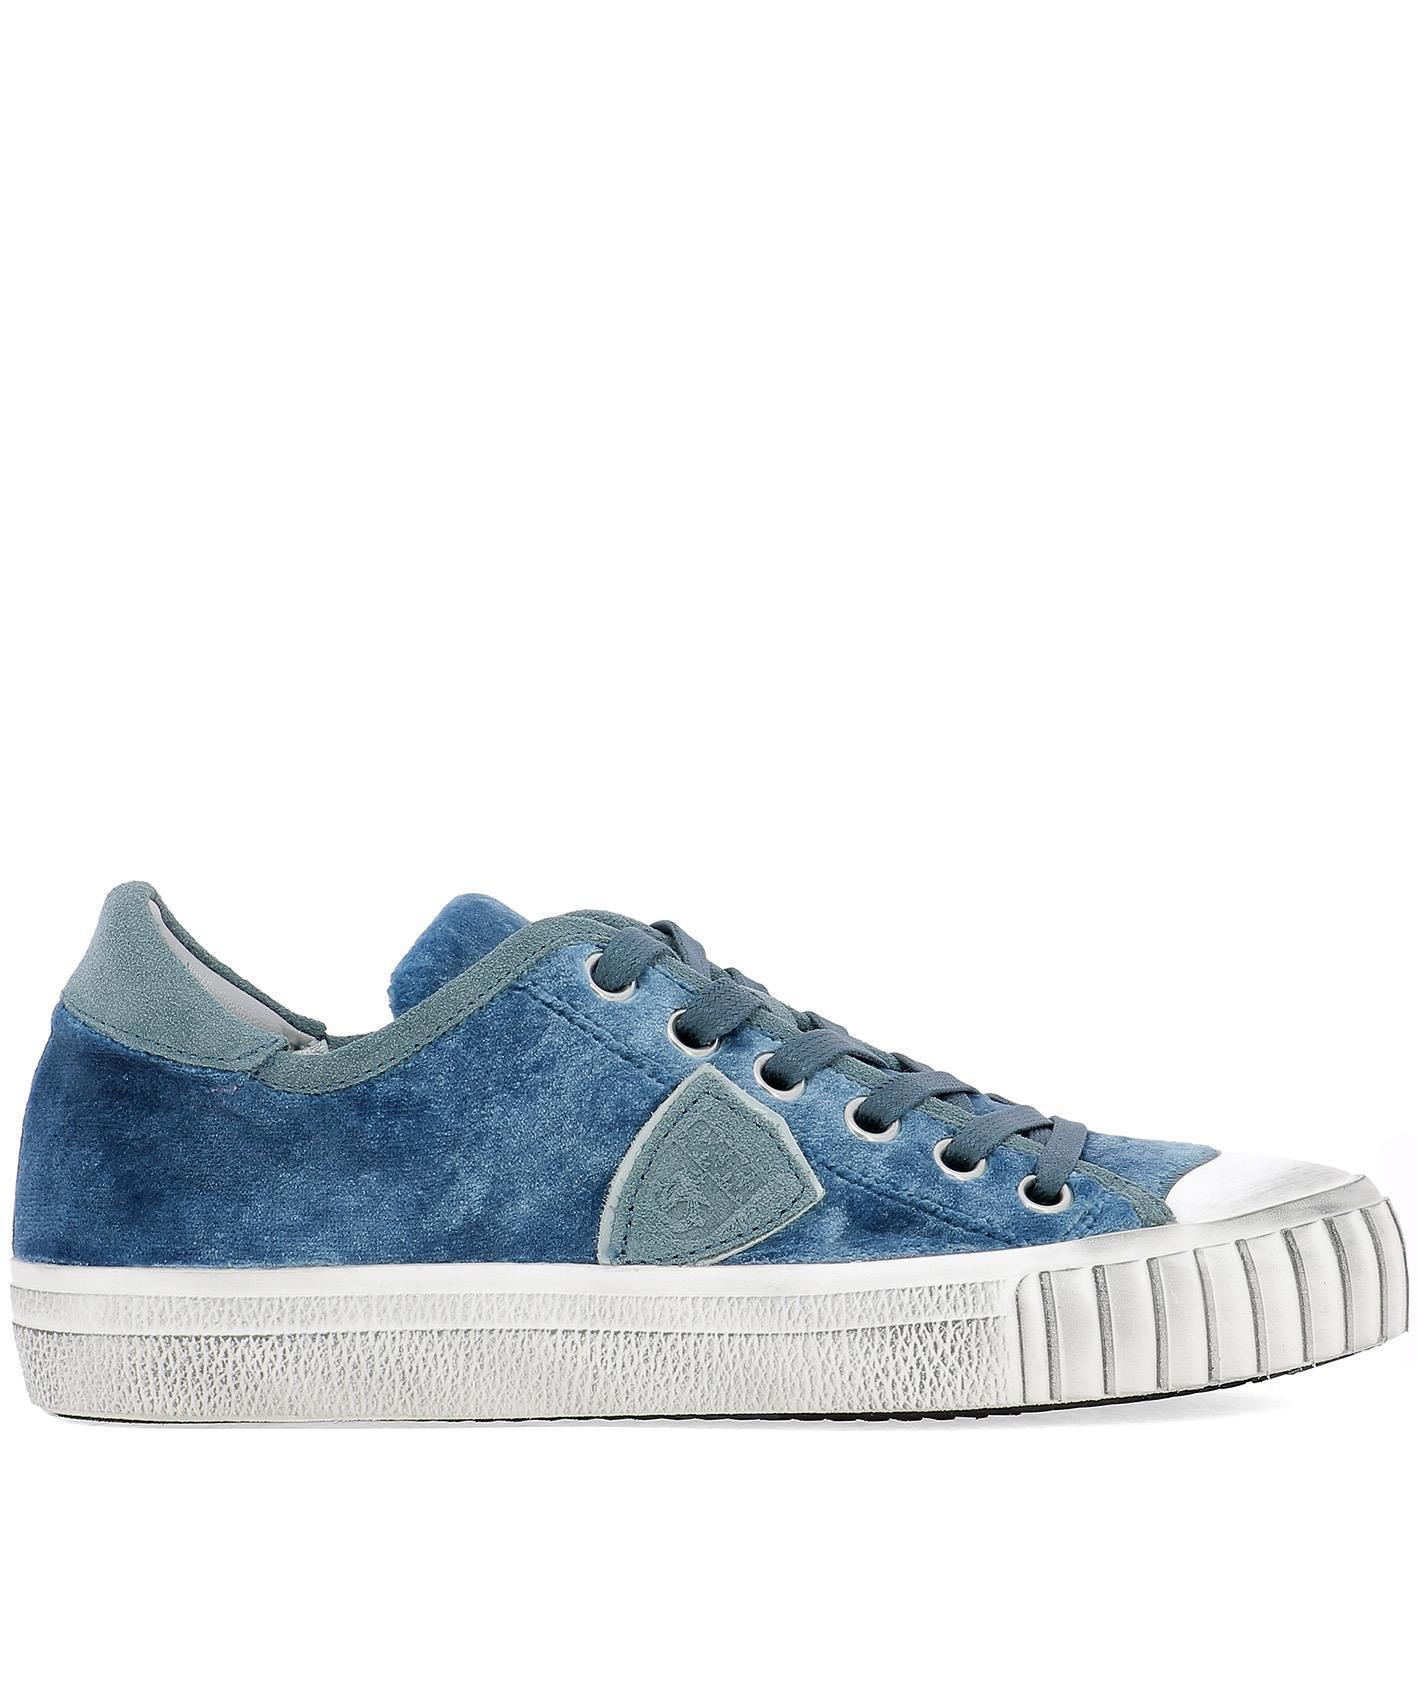 low priced b6071 896e9 philippe-model-Blue-Paris-Lace-up-Sneakers.jpeg